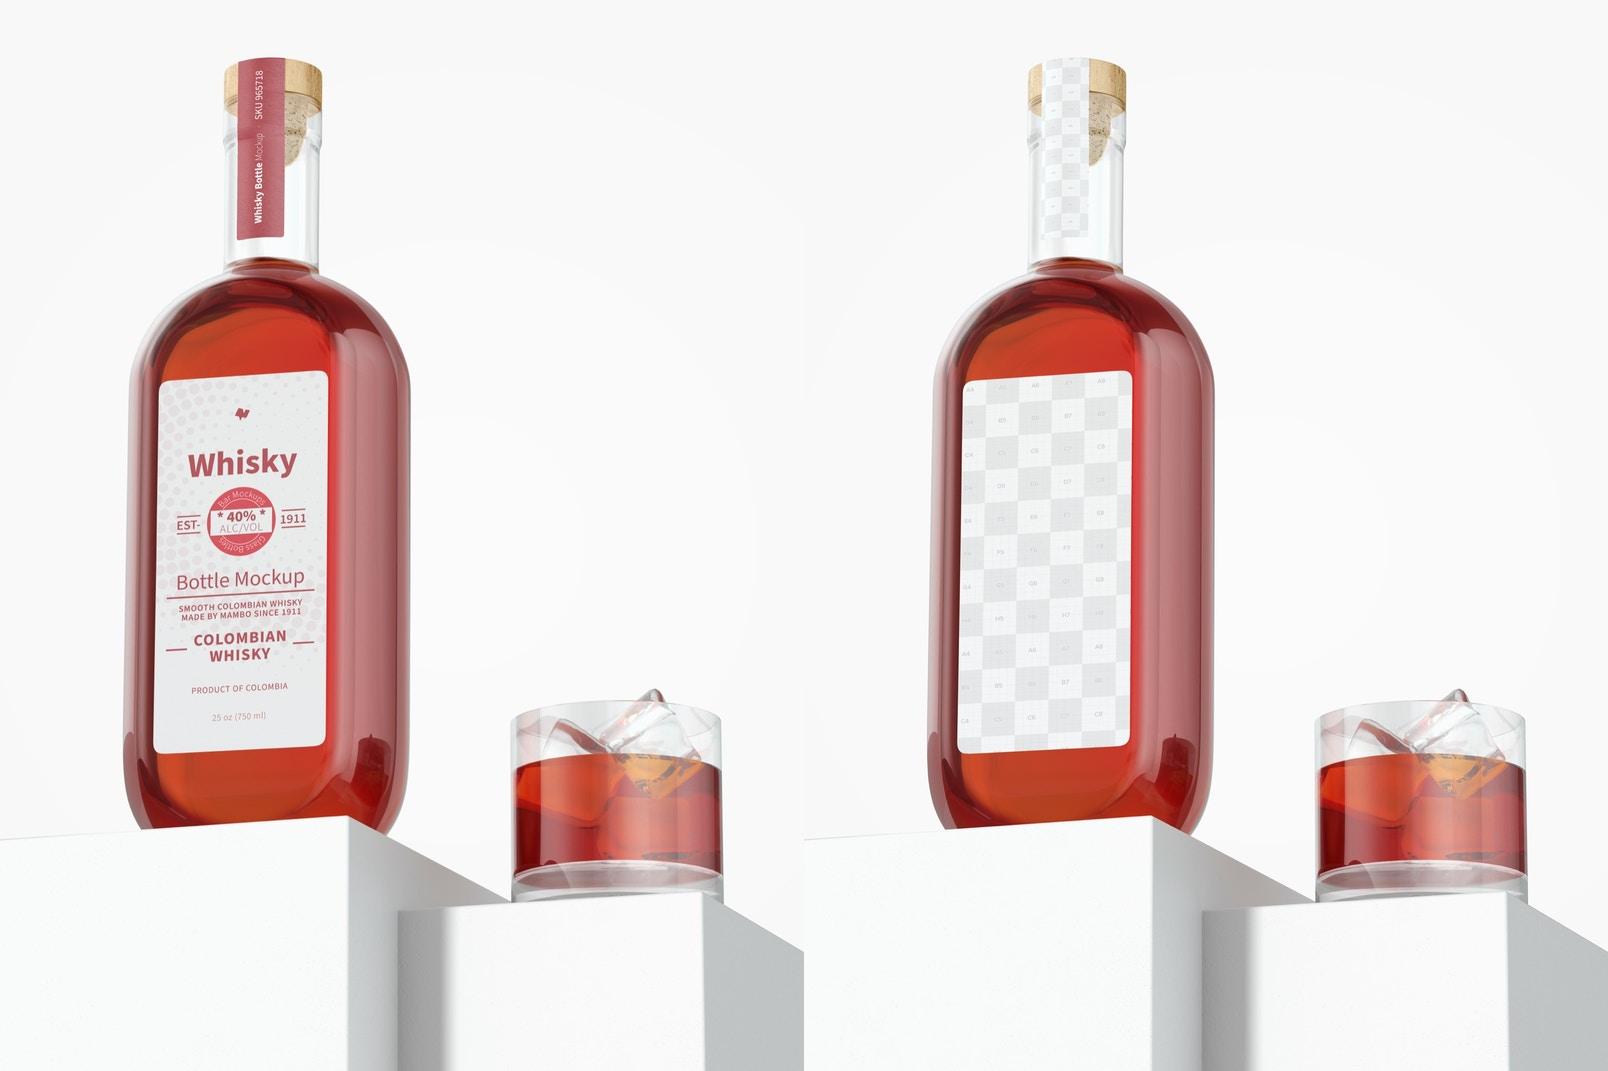 Whisky Bottle Mockup, Low Angle View